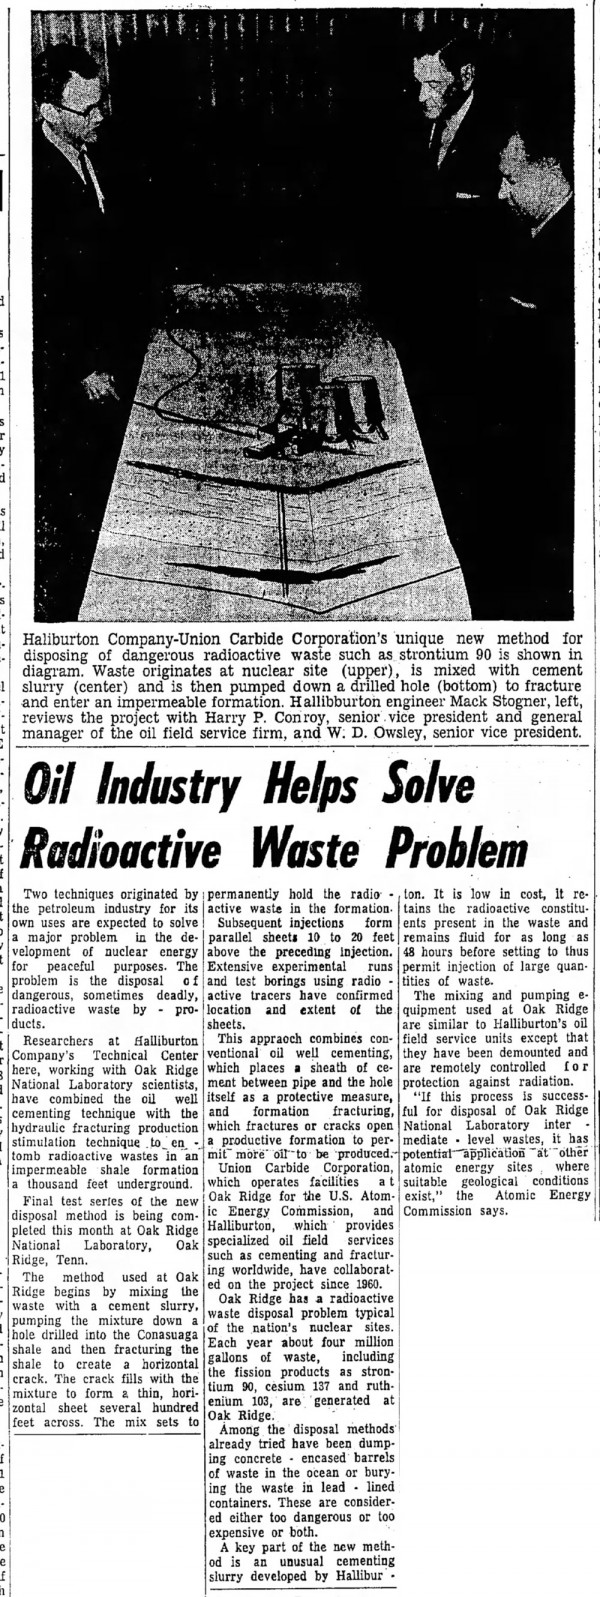 Shock-Fracking-Used-to-Inject-Nuclear-Waste-Underground-for-Decades-Great-Bend-Tribune-Sun-Apr-19-1964